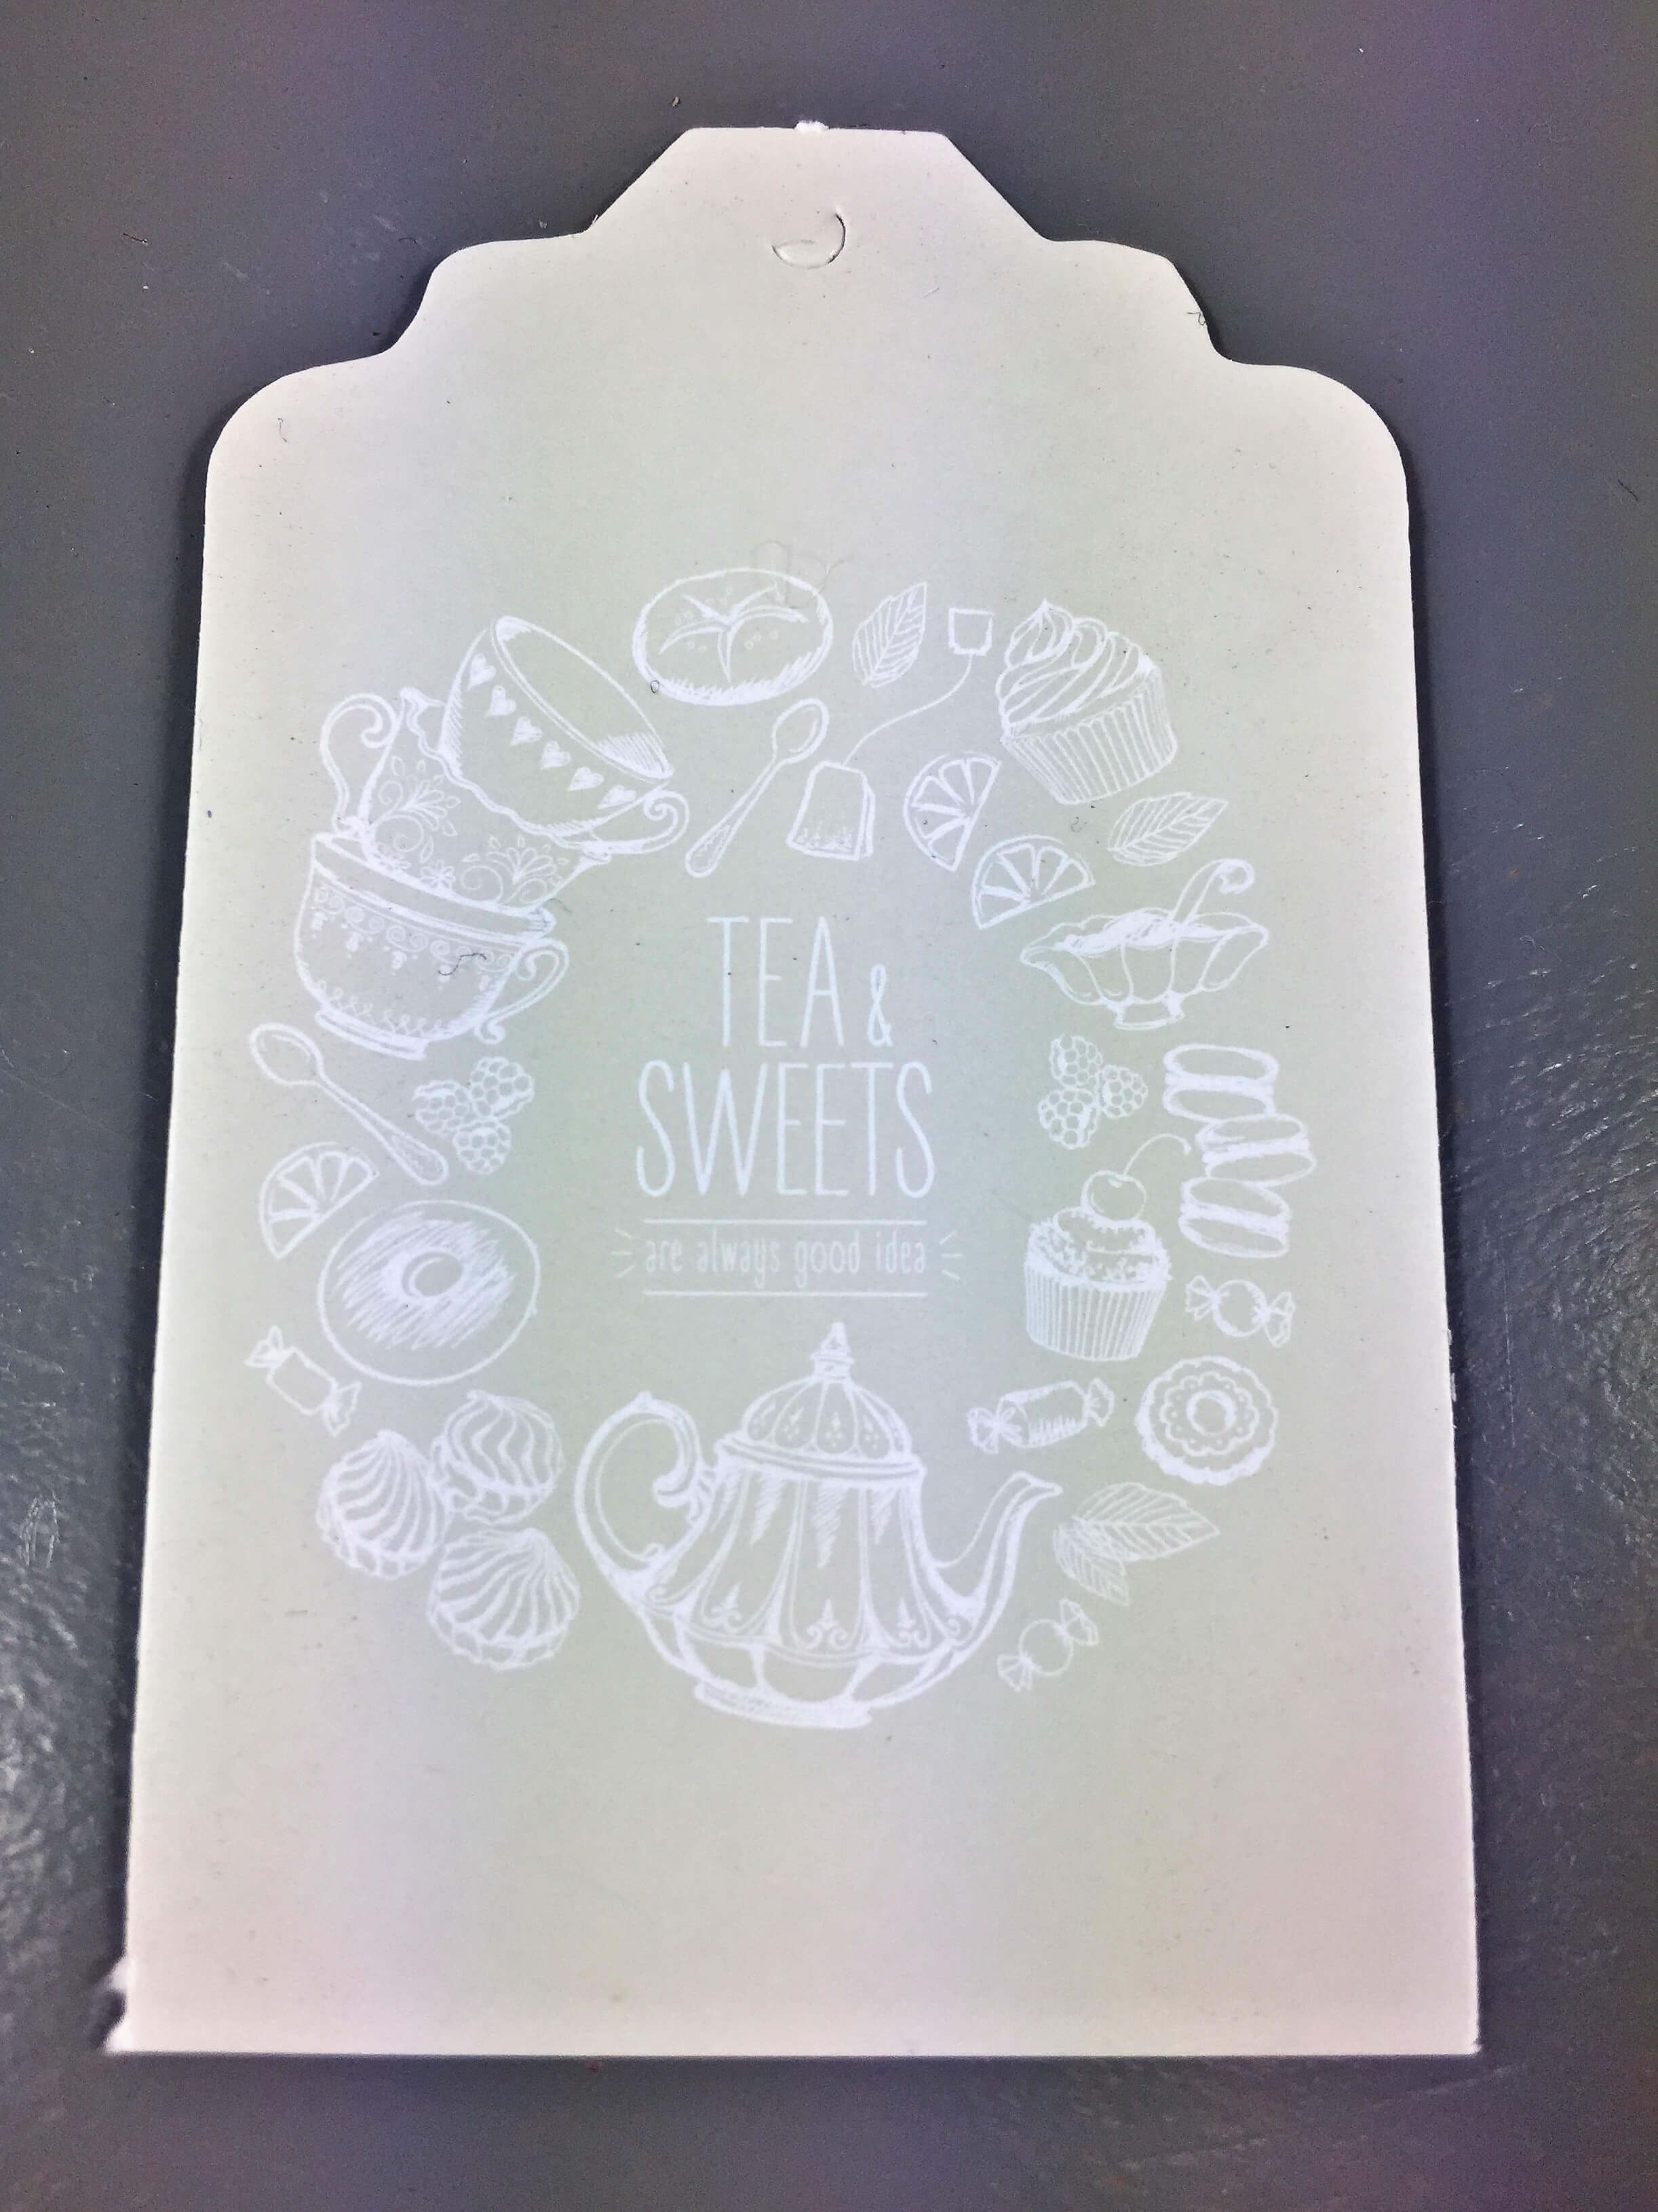 Tea & Sweets - Beige with white text